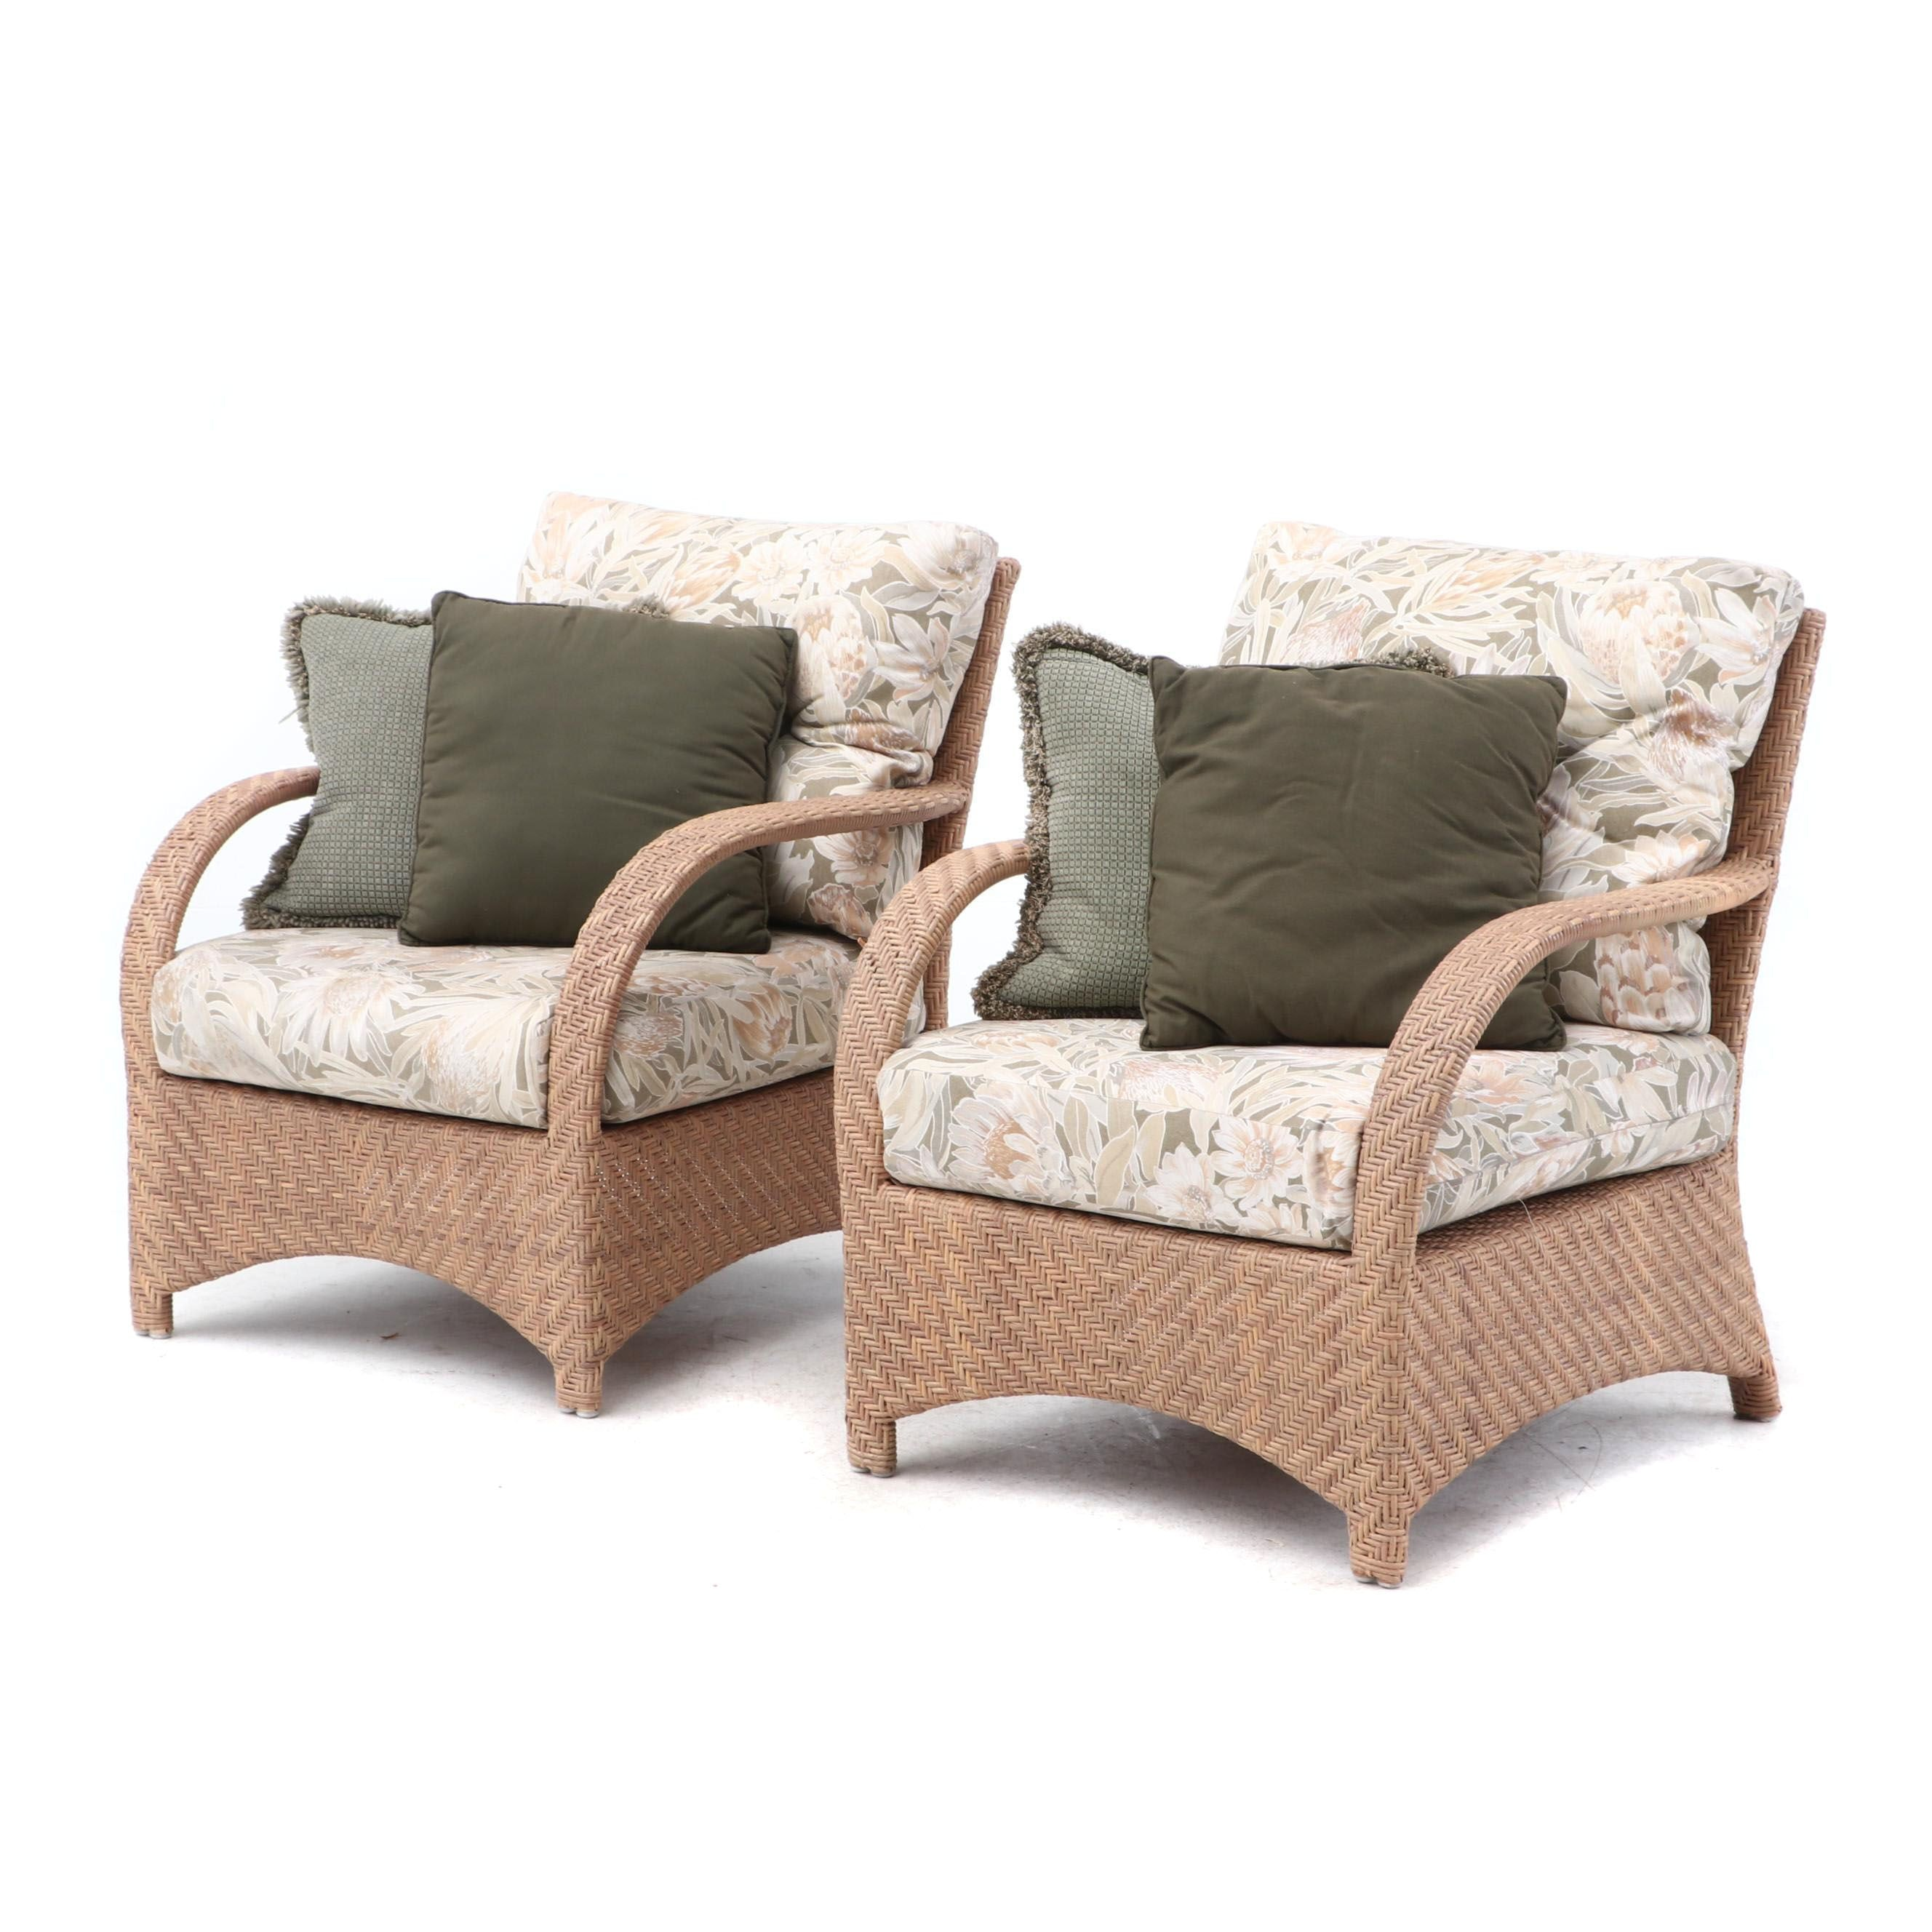 Wicker Patio Arm Chairs with Cushions and Accent Pillows